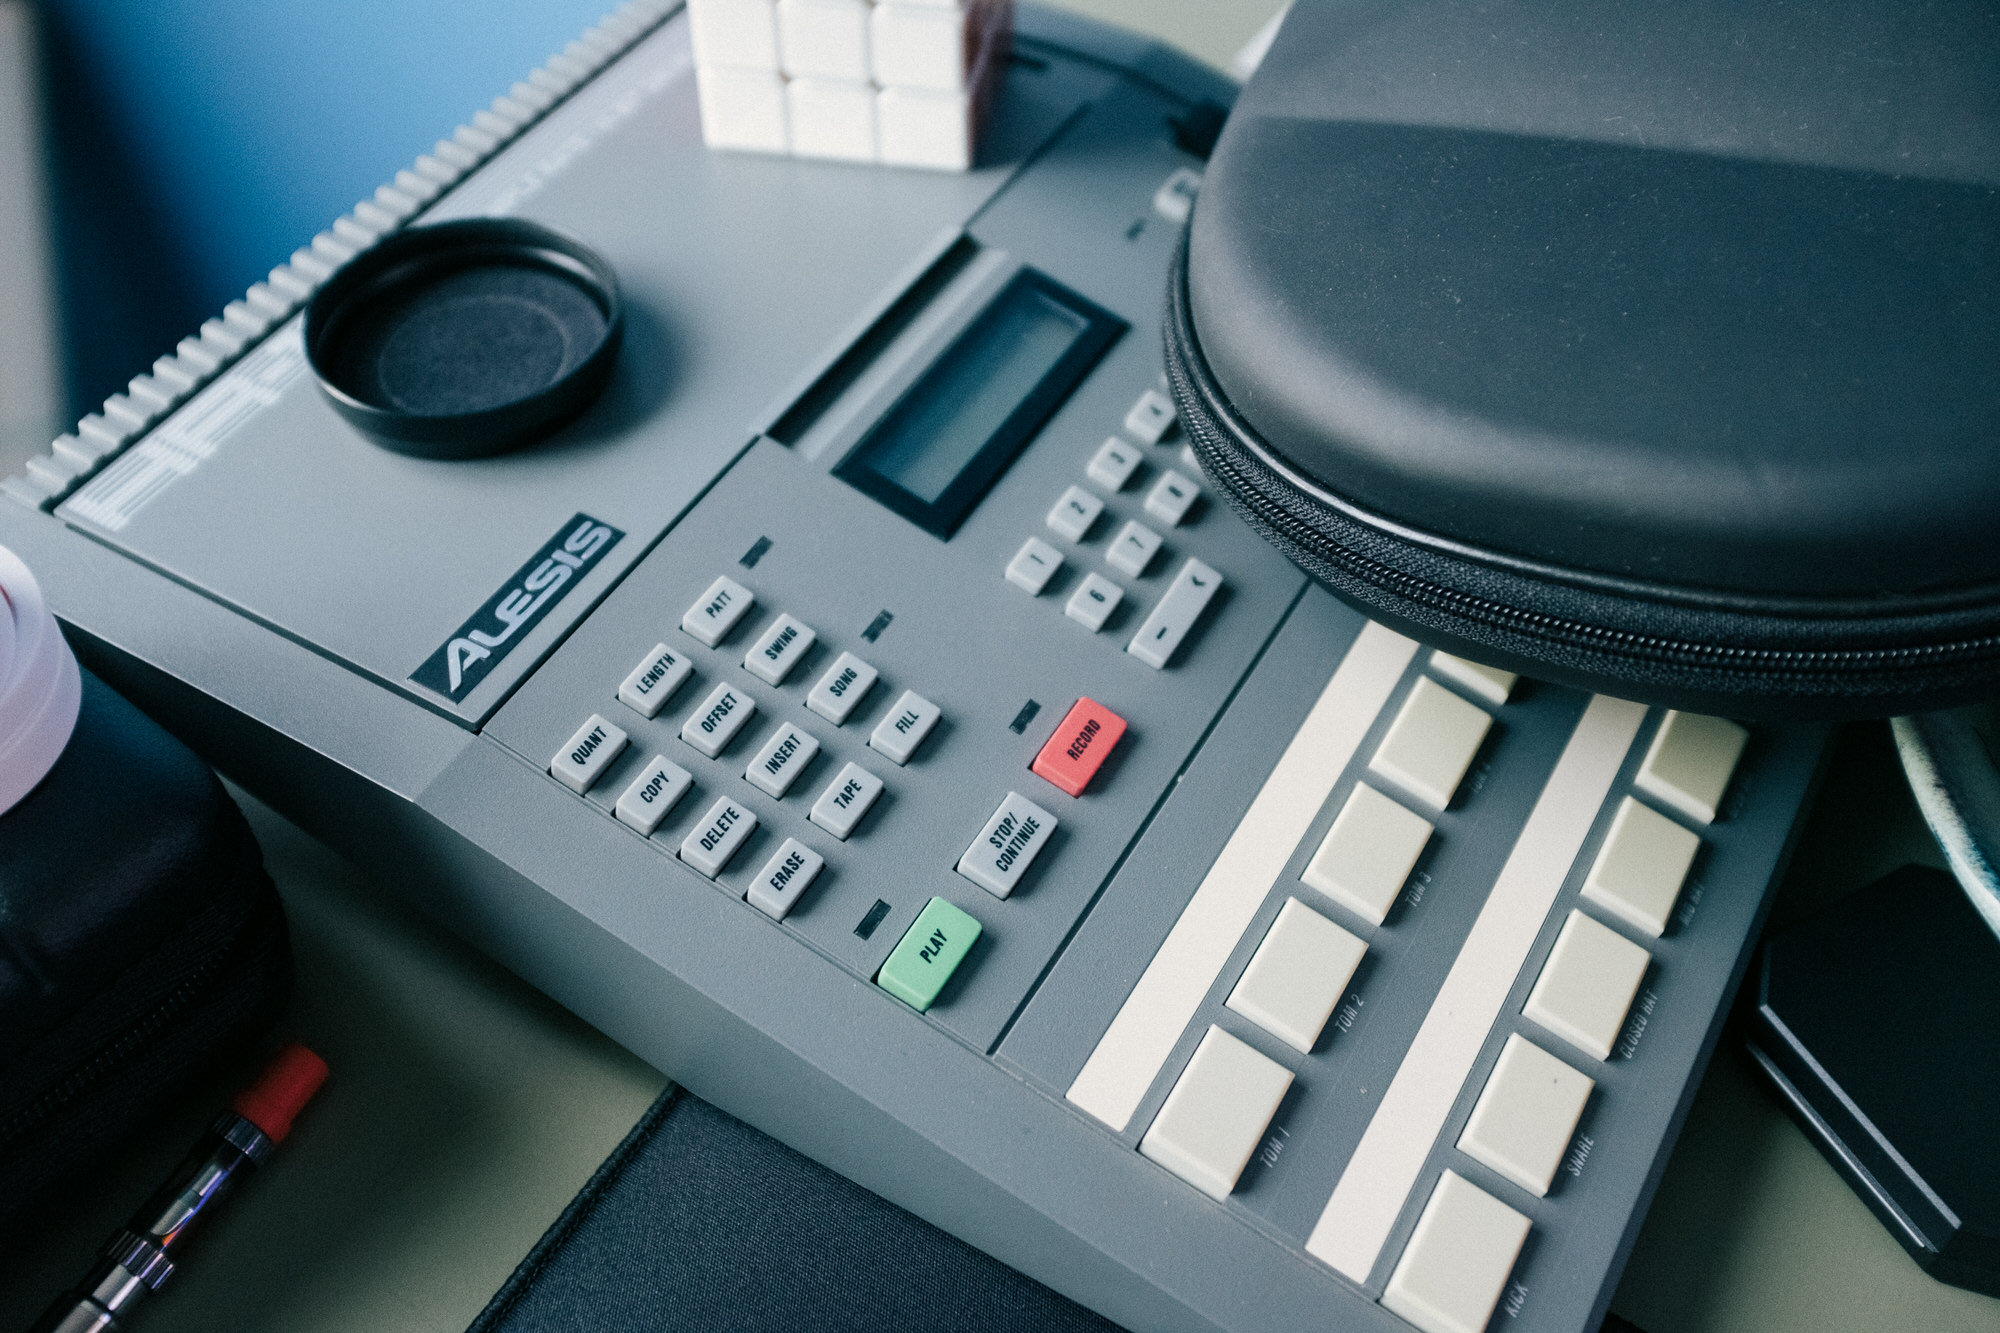 An image of the Alesis HR-16.